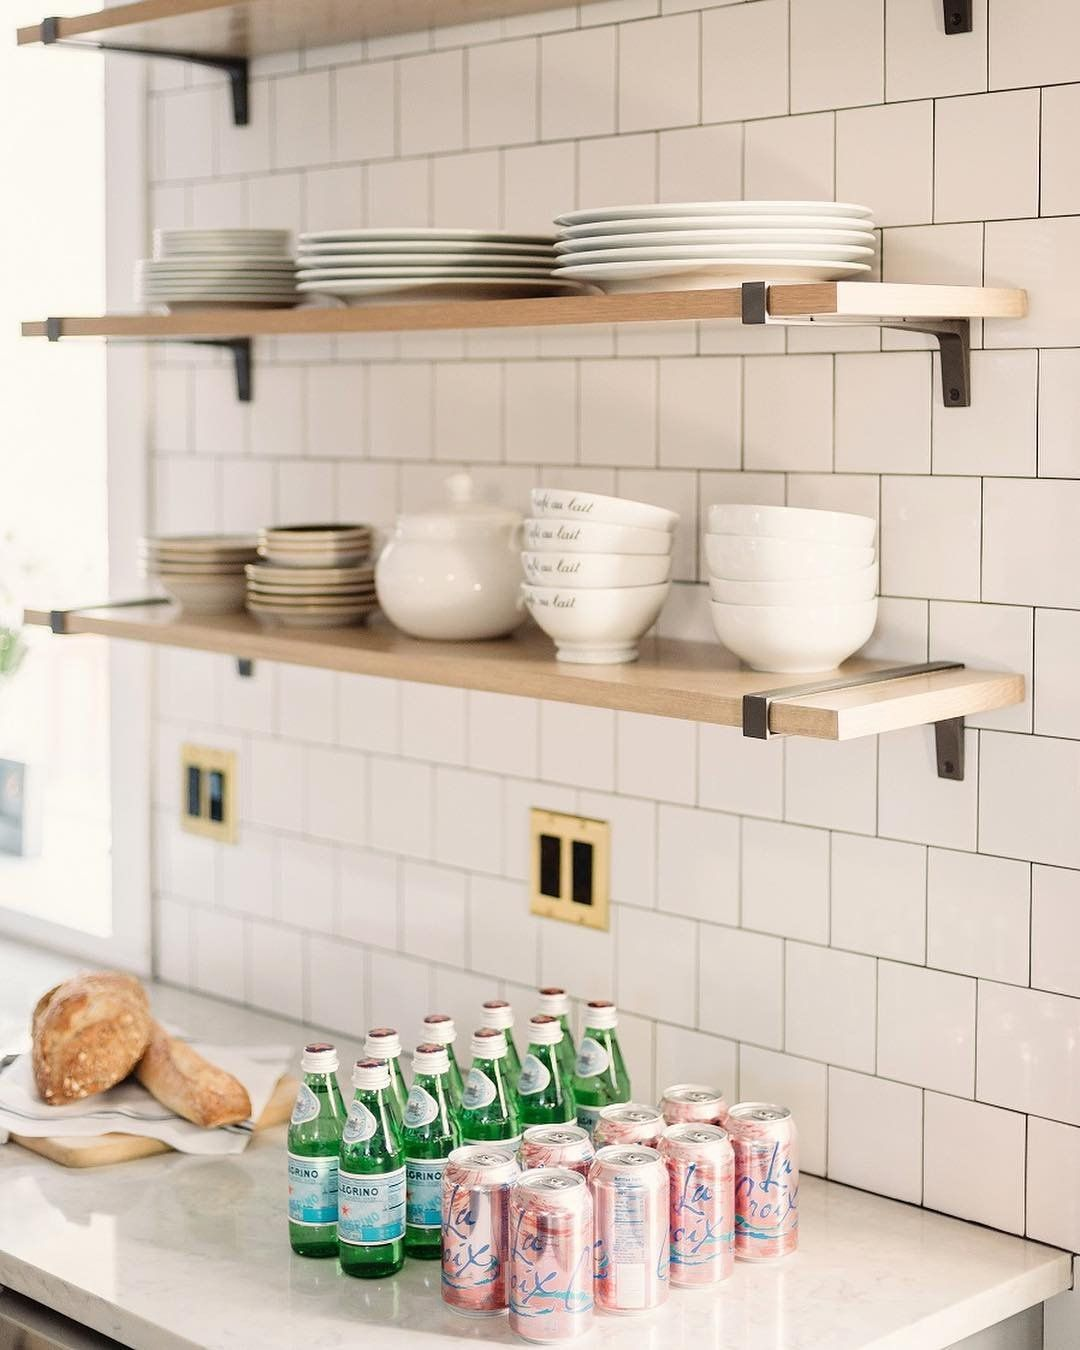 White Kitchen Shelf: Open Shelving. Shelving. White Tile. Wood Shelves. Black